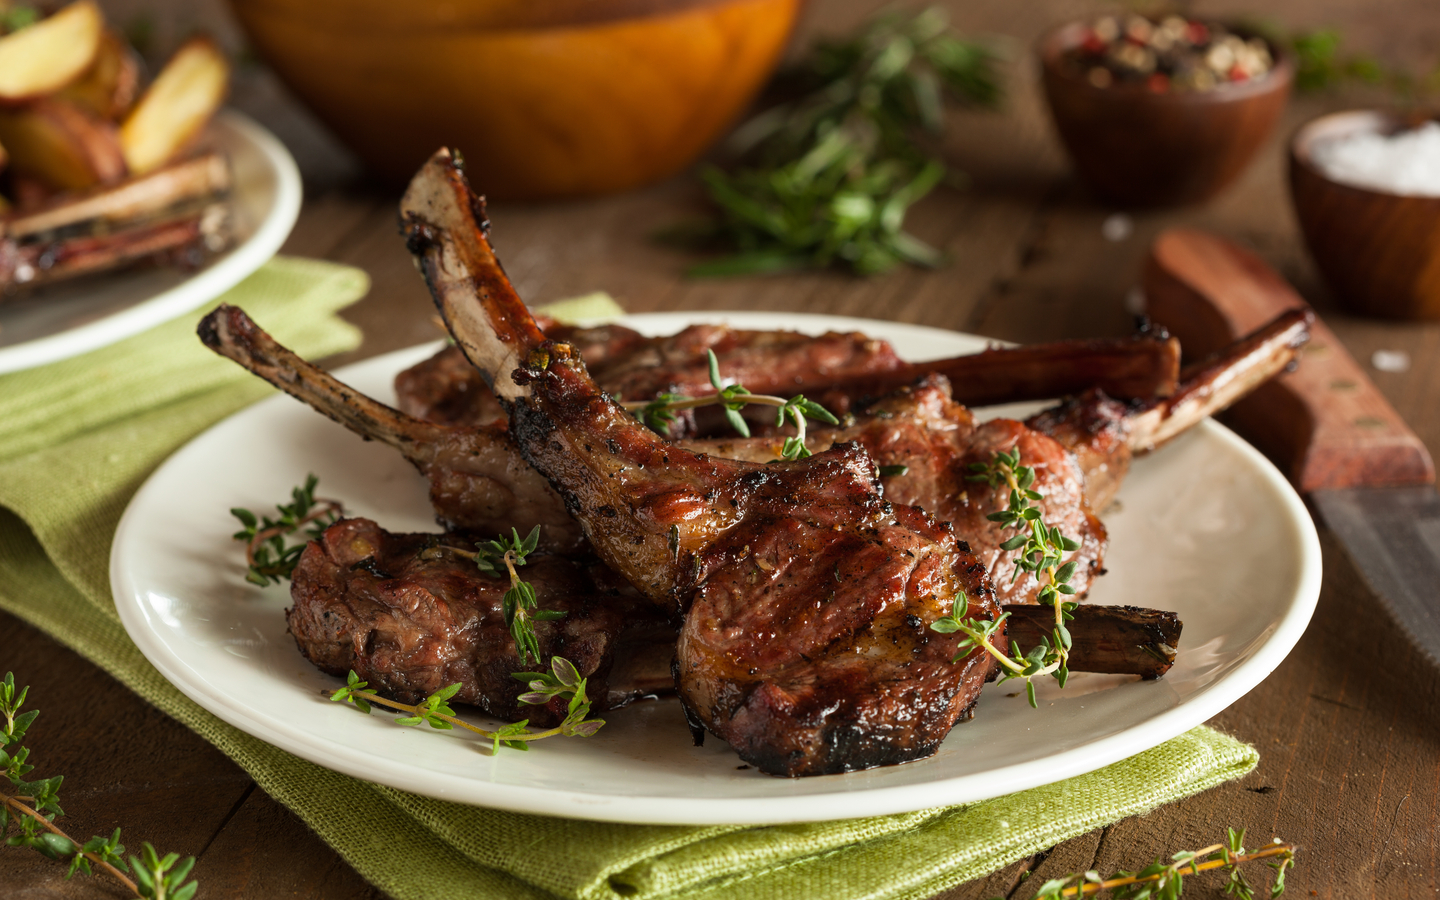 Piping hot Lamb chops topped with lime